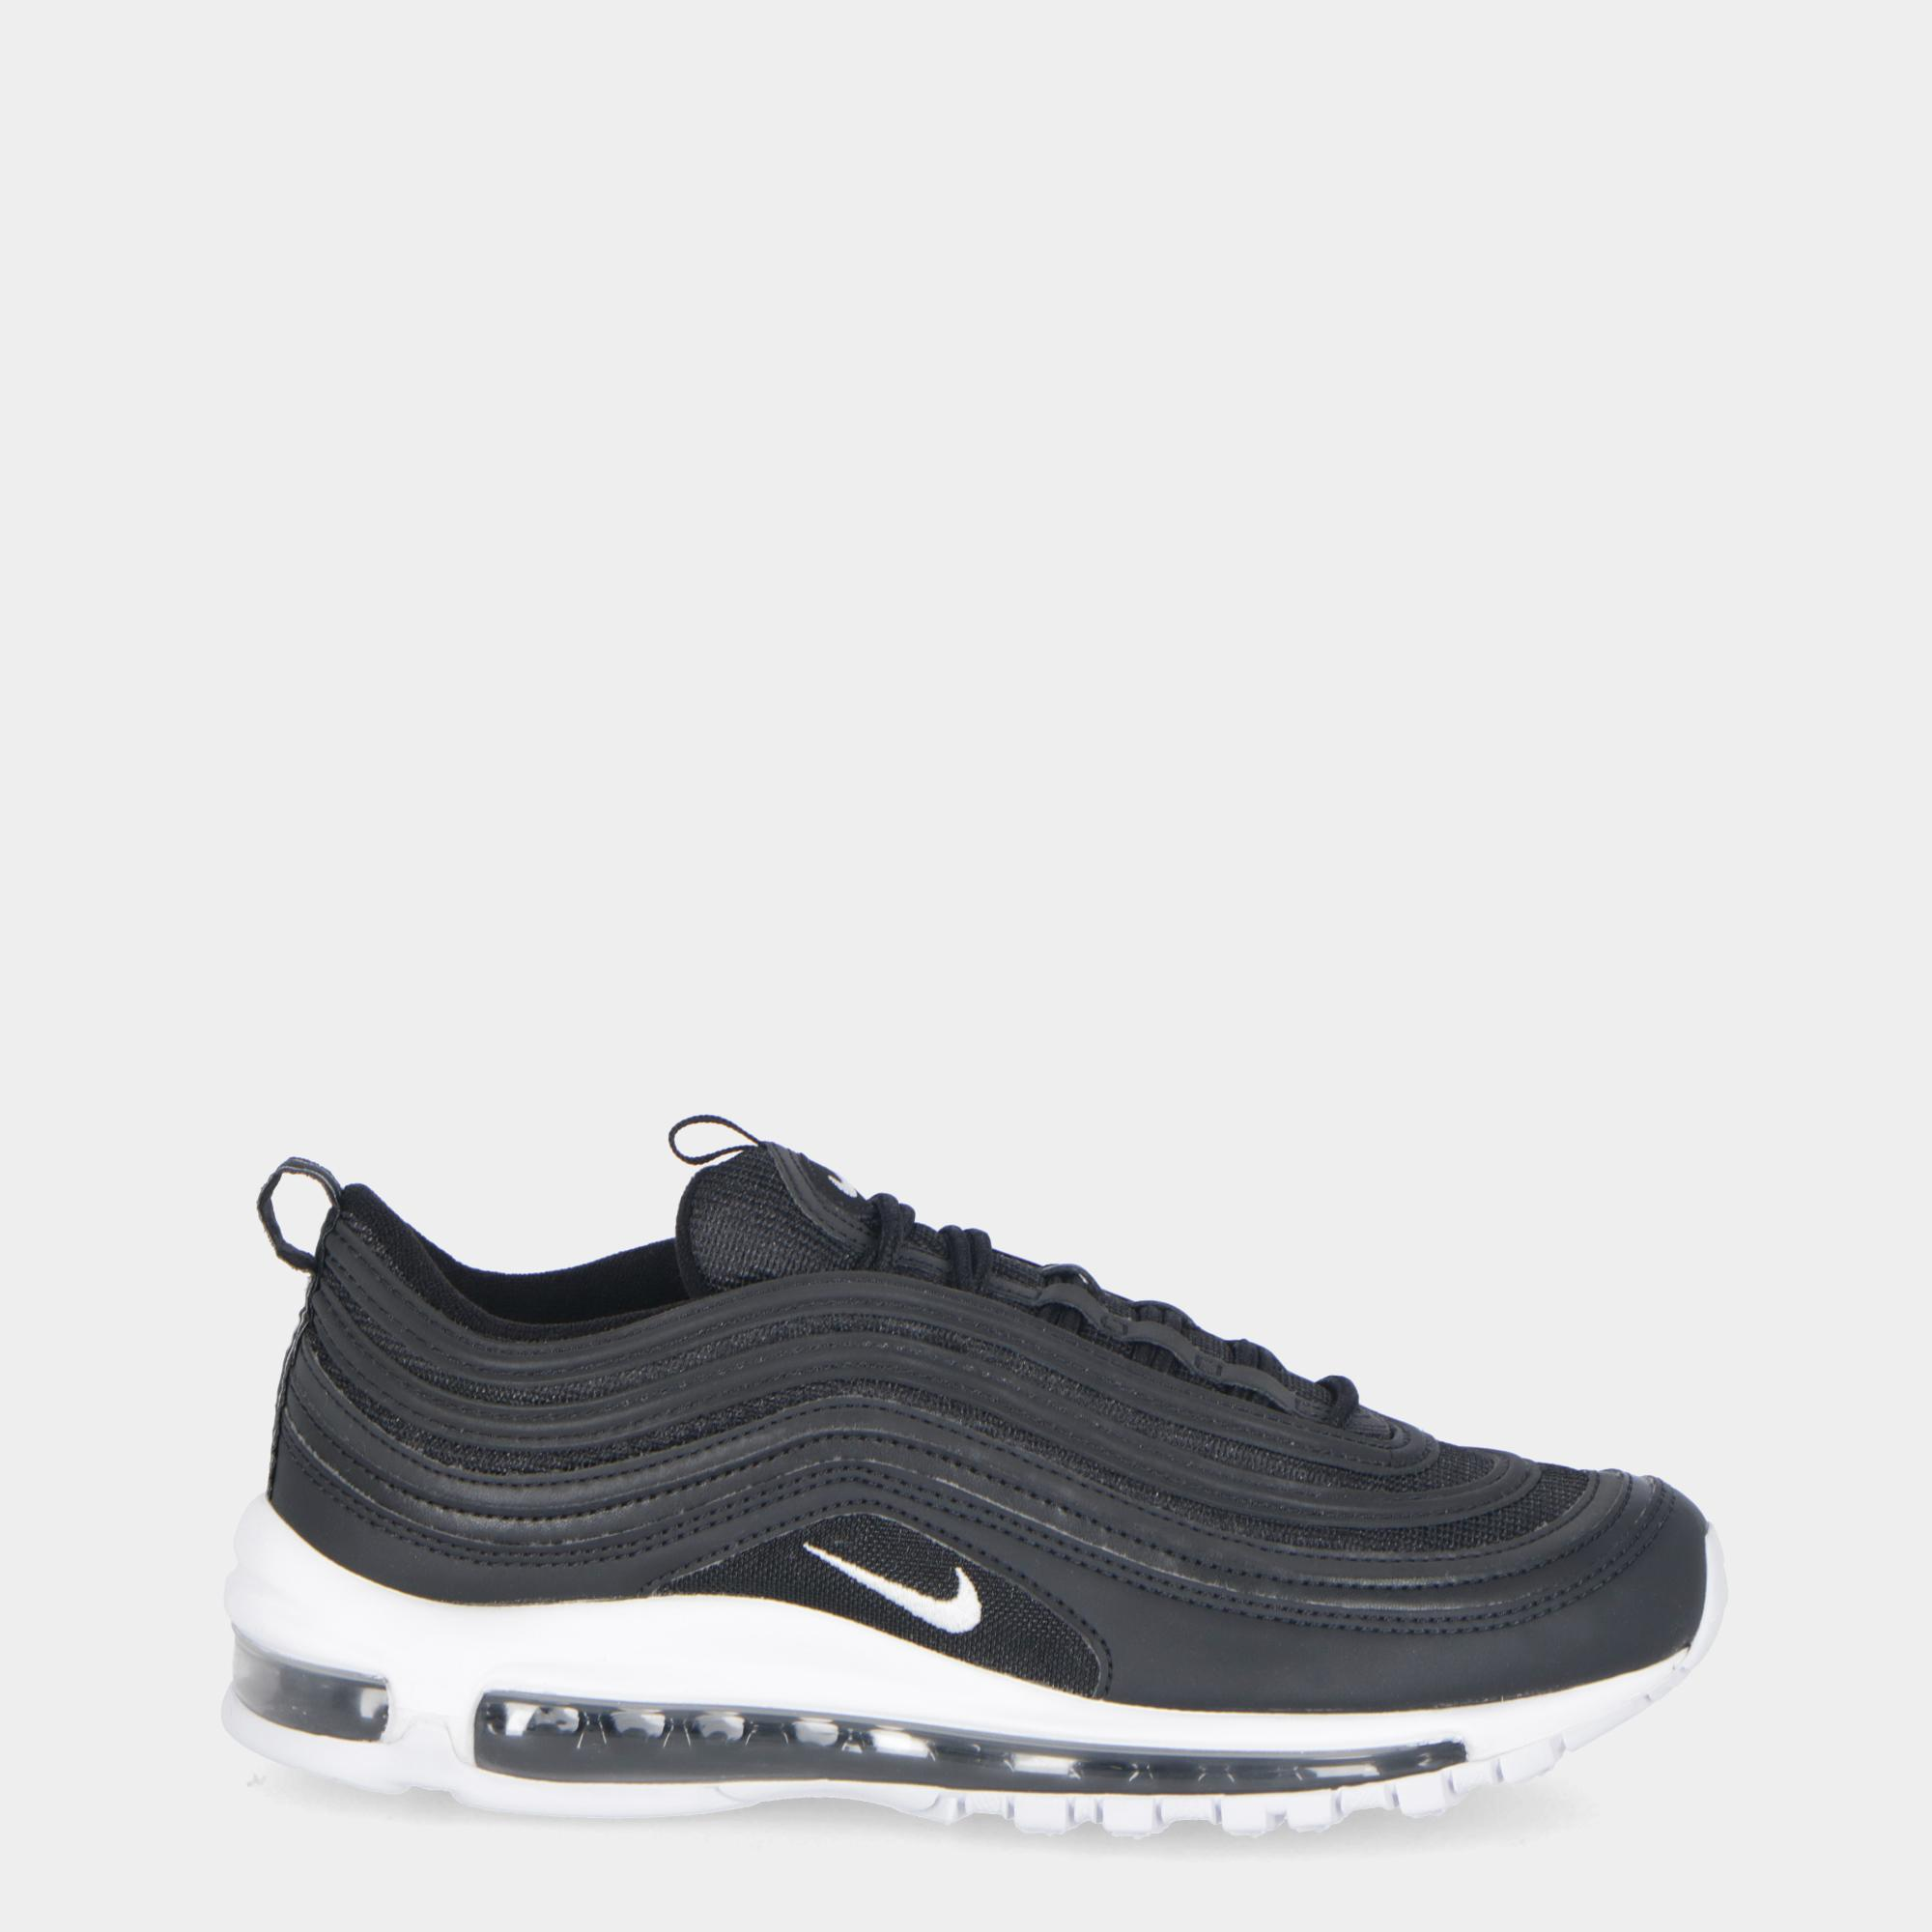 huge selection of d1c02 91d75 Nike Air Max 97 Black white